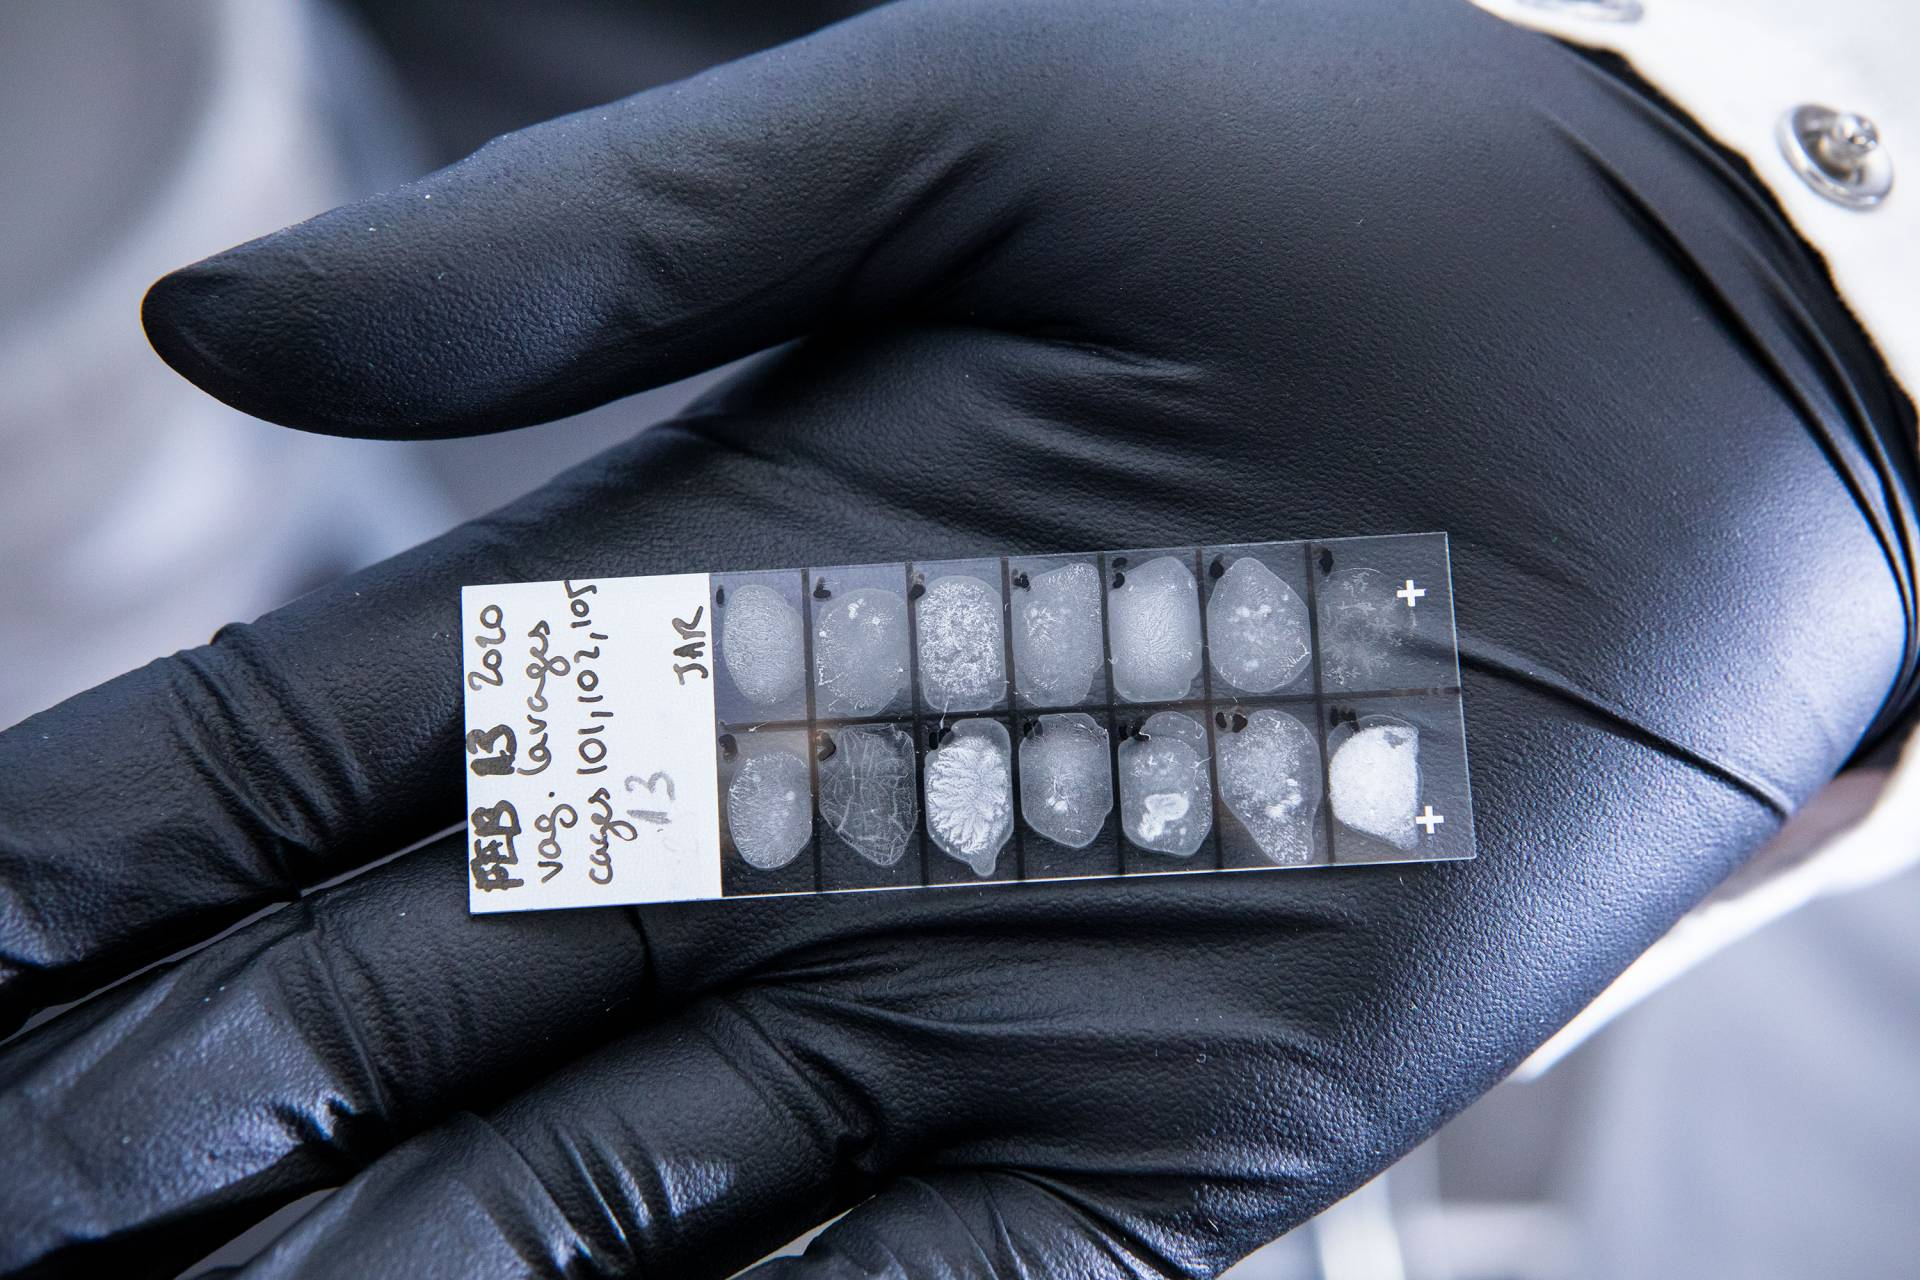 Lab samples in the palm of a nitrile gloved hand